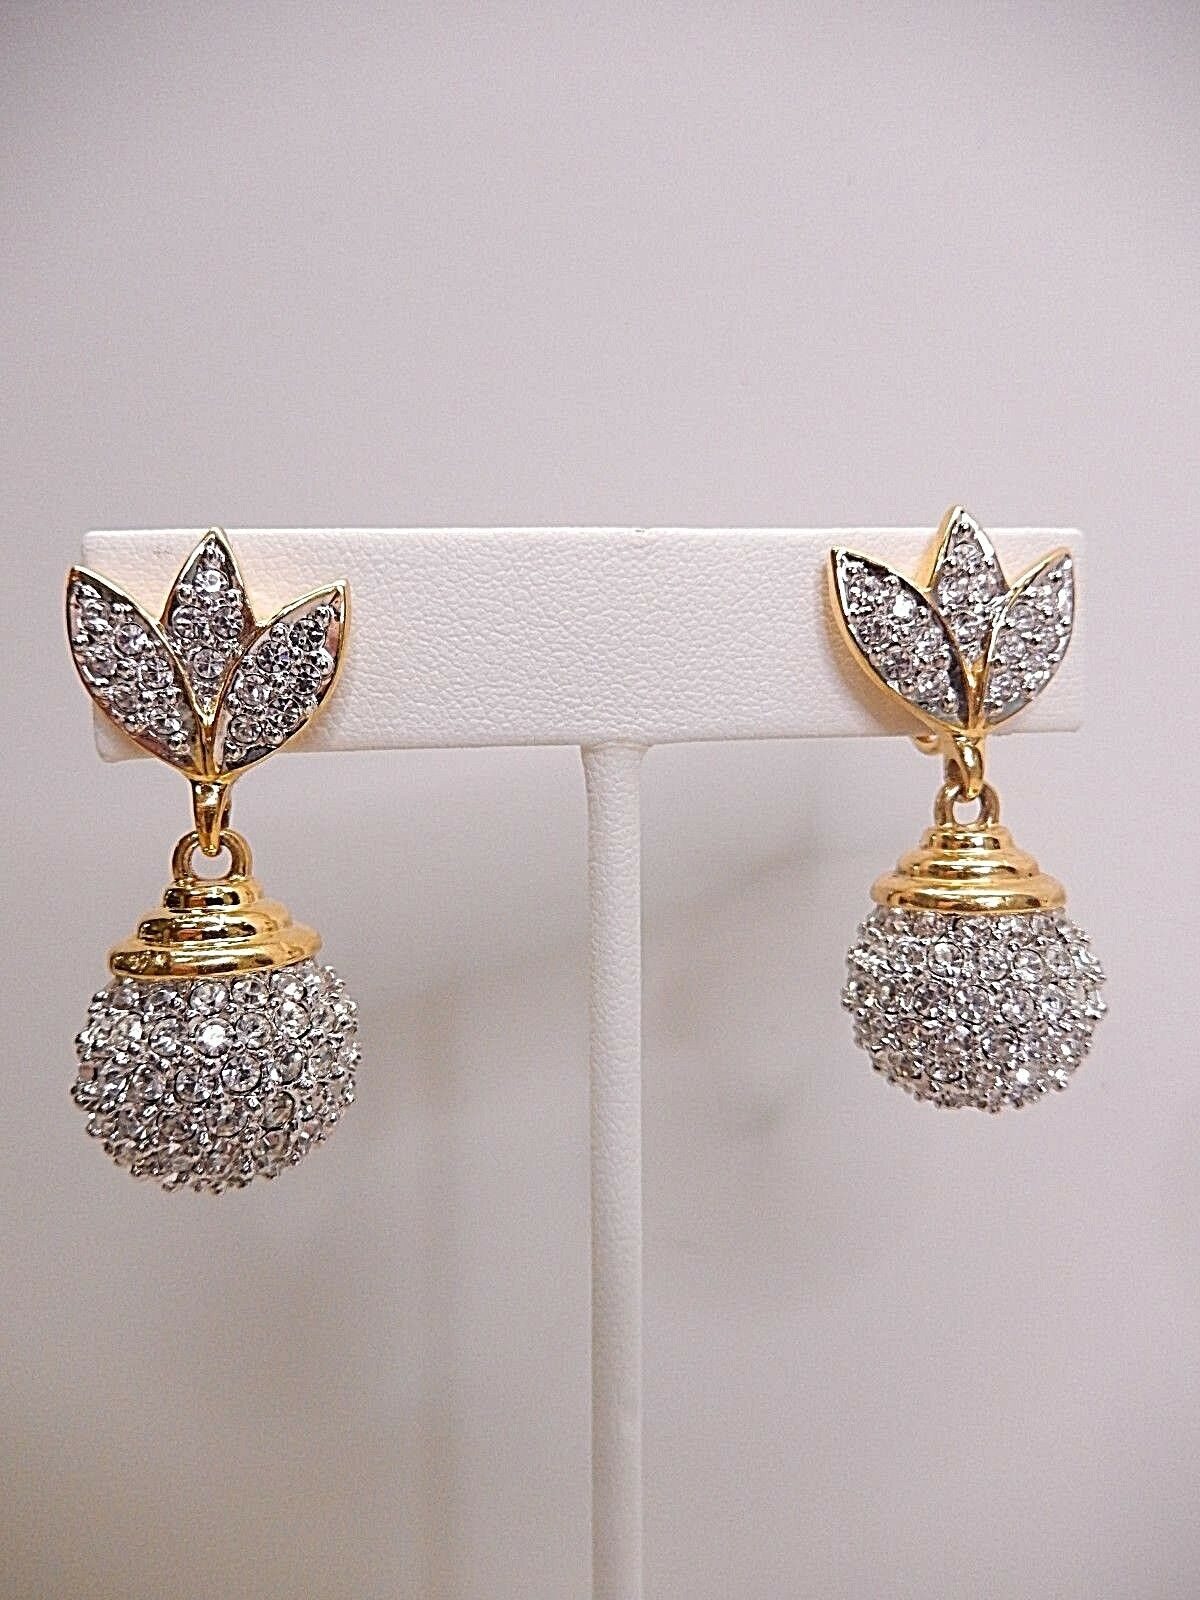 Signed Swarovski Earrings Clear Crystal Pave Ball Dangle gold Plated Clip On